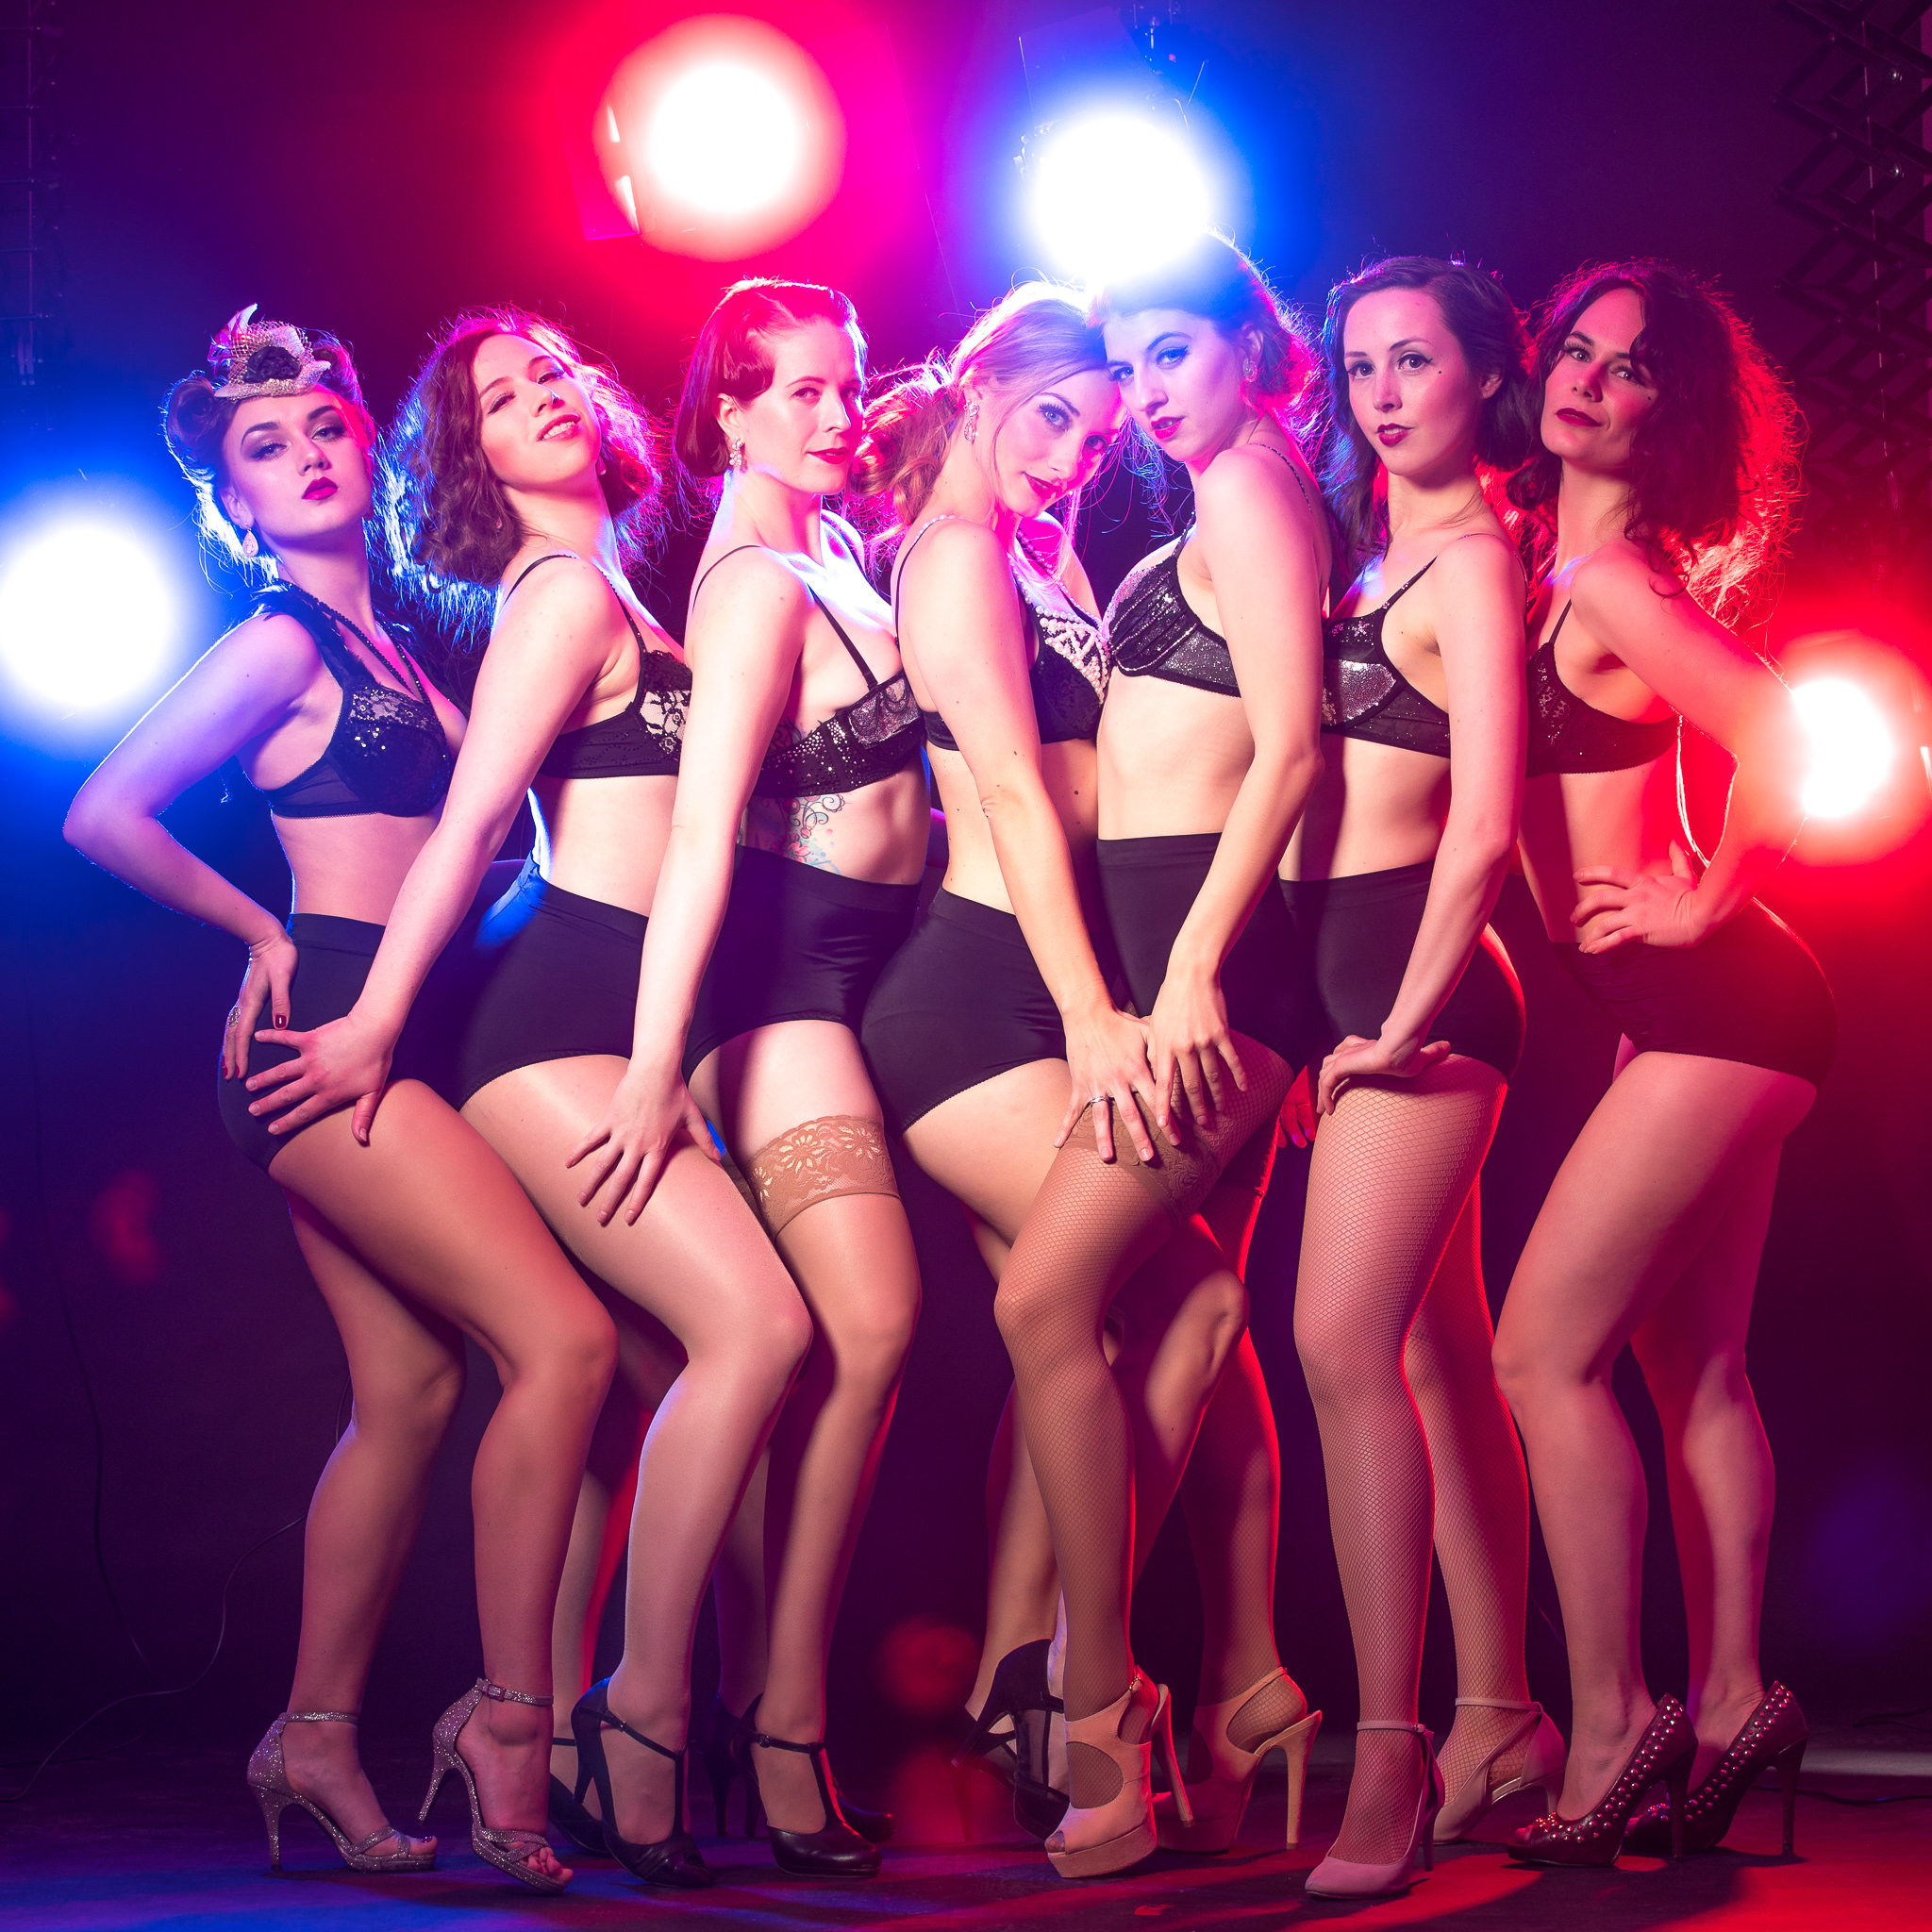 LIVE SHOWS - WITNESS A GLAMOROUS, SEXY AND HUMORISTIC SHOW.IT WILL KNOCK YOUR FEET OFF, MAKE YOUR JAW DROP AND GET YOUR PARTY STARTED.